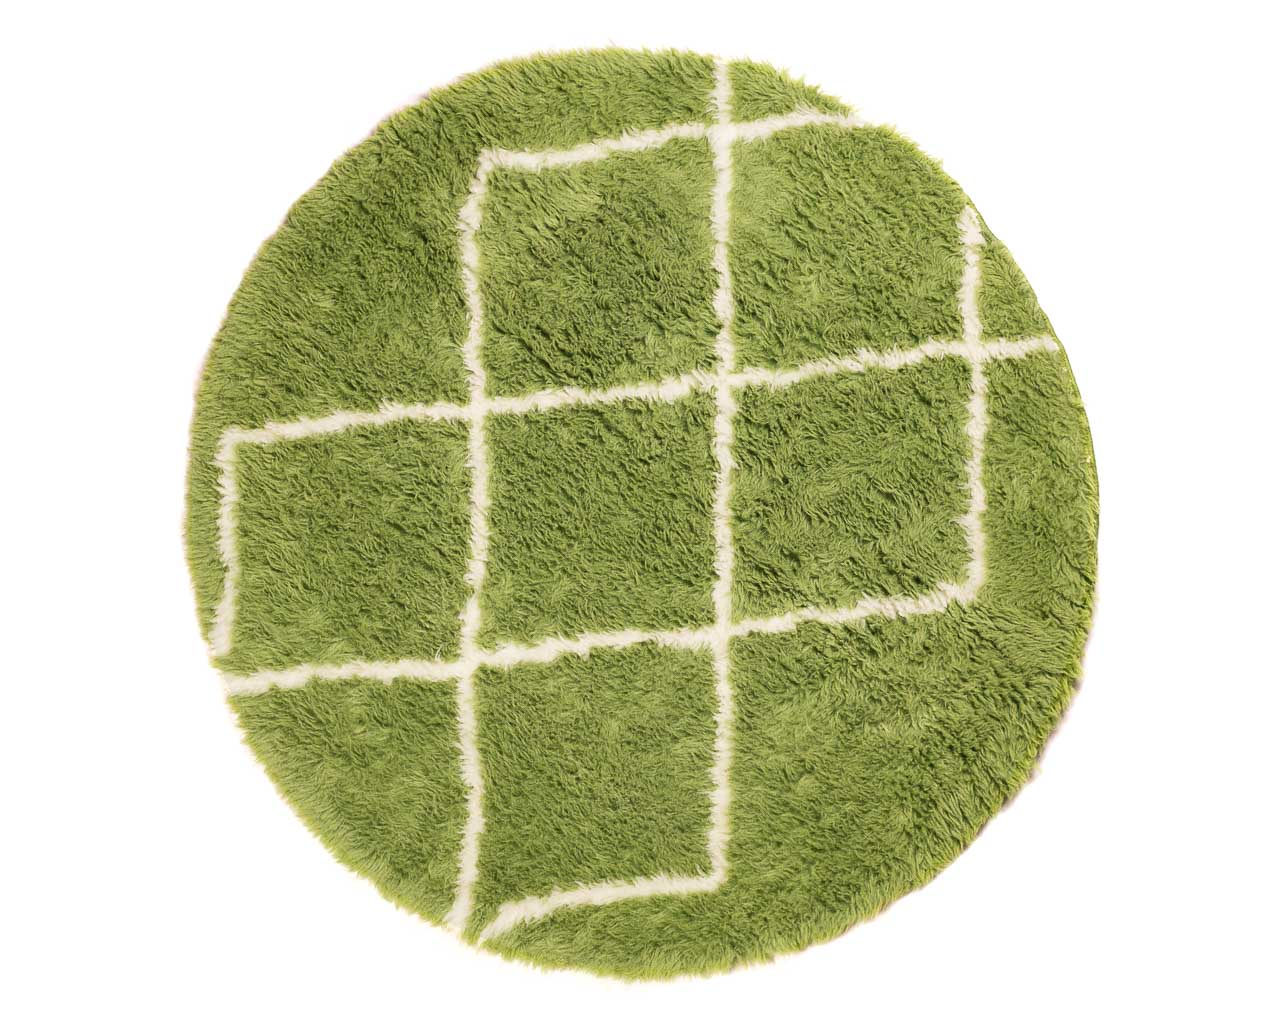 round green rug with rhombus patterns